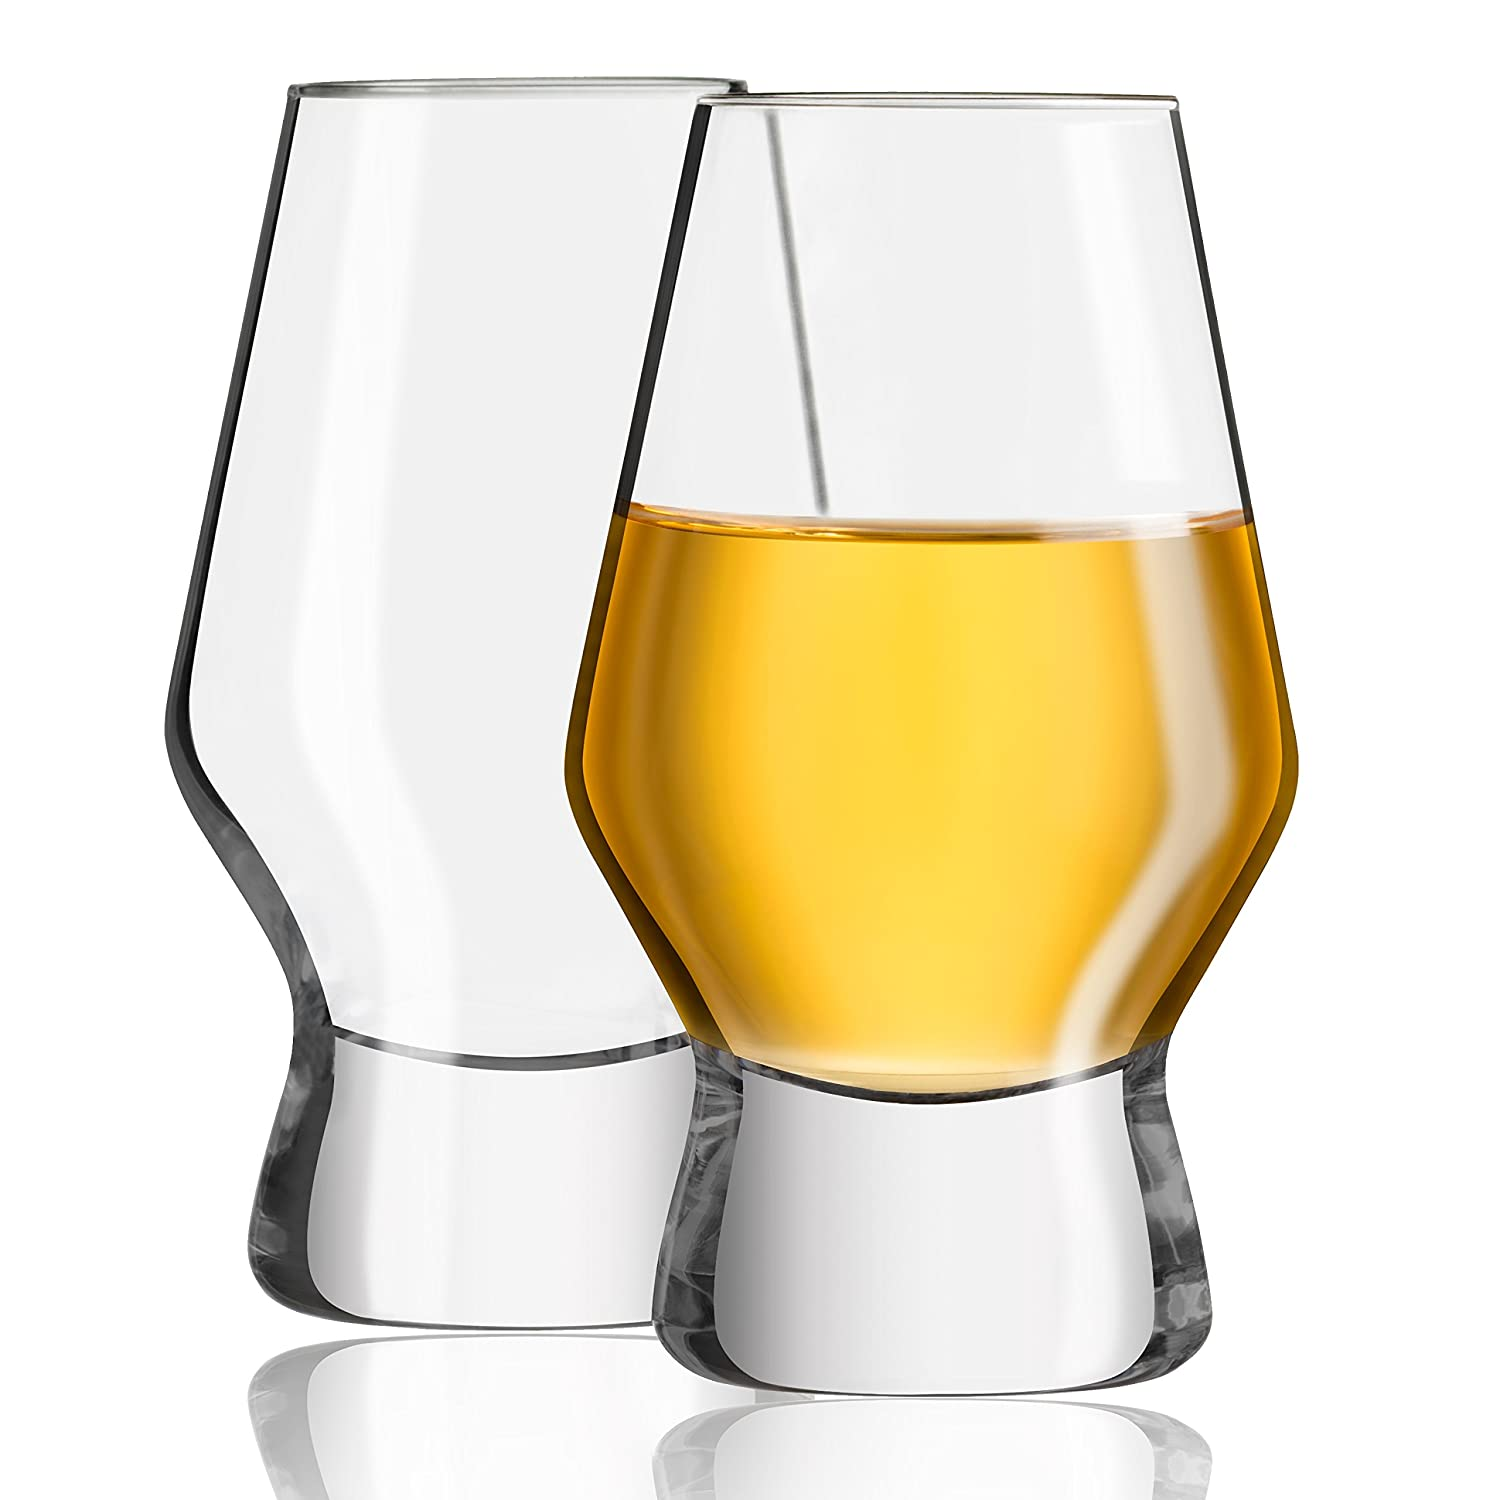 JoyJolt Halo Crystal Whiskey Glasses, Set of 2. Perfect Whisky Glass or Scotch/Bourbon Glasses 7.8 ounce